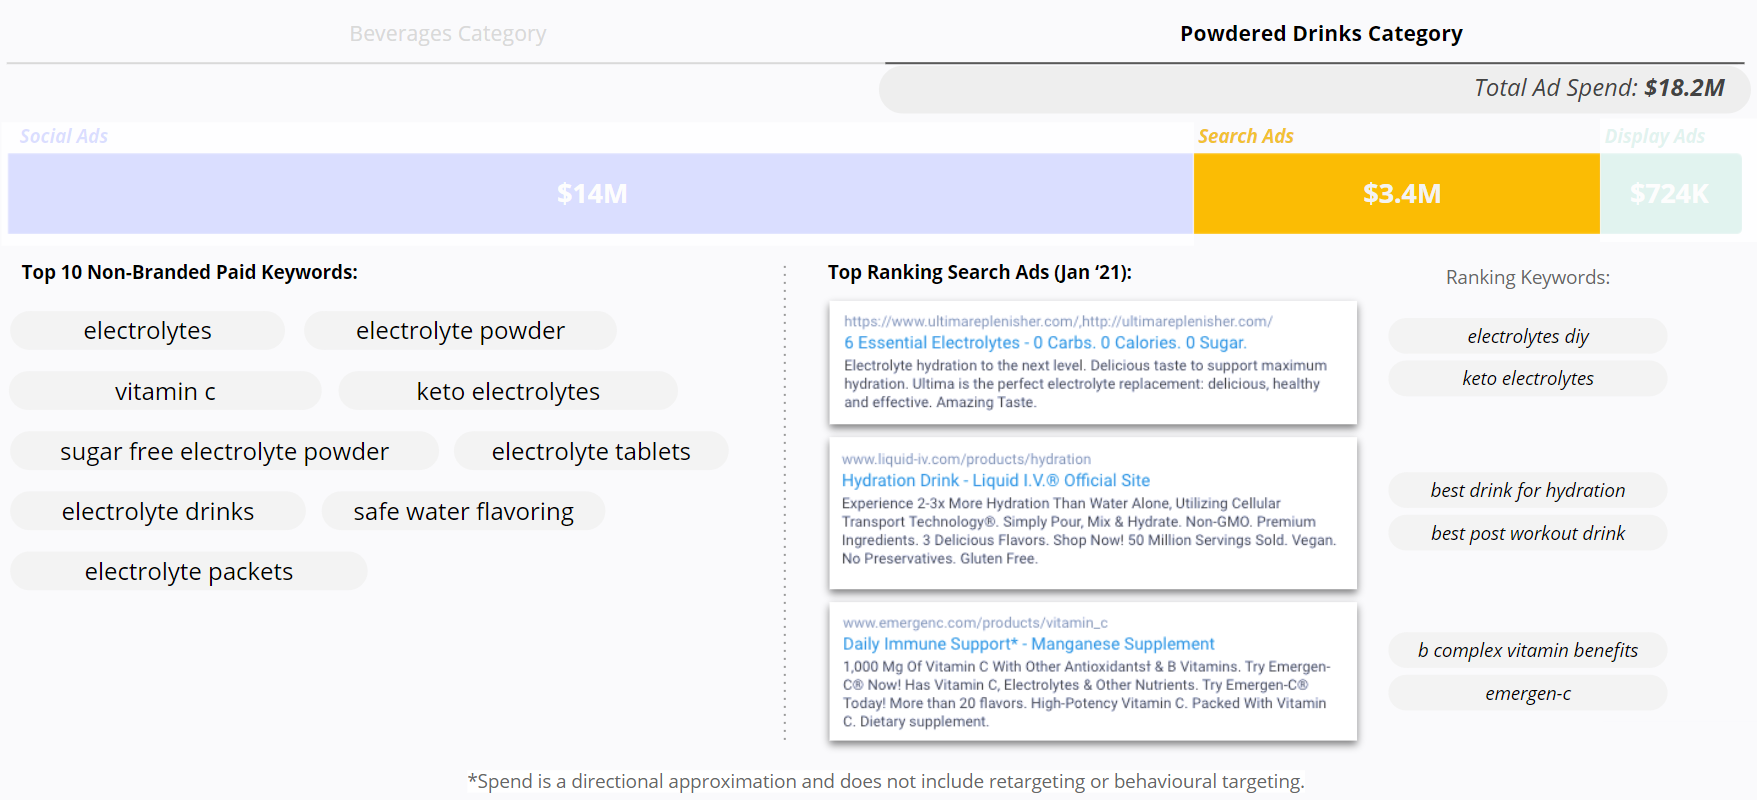 Powdered Drinks - Search Terms - Top 10 Non-Branded Paid Keywords